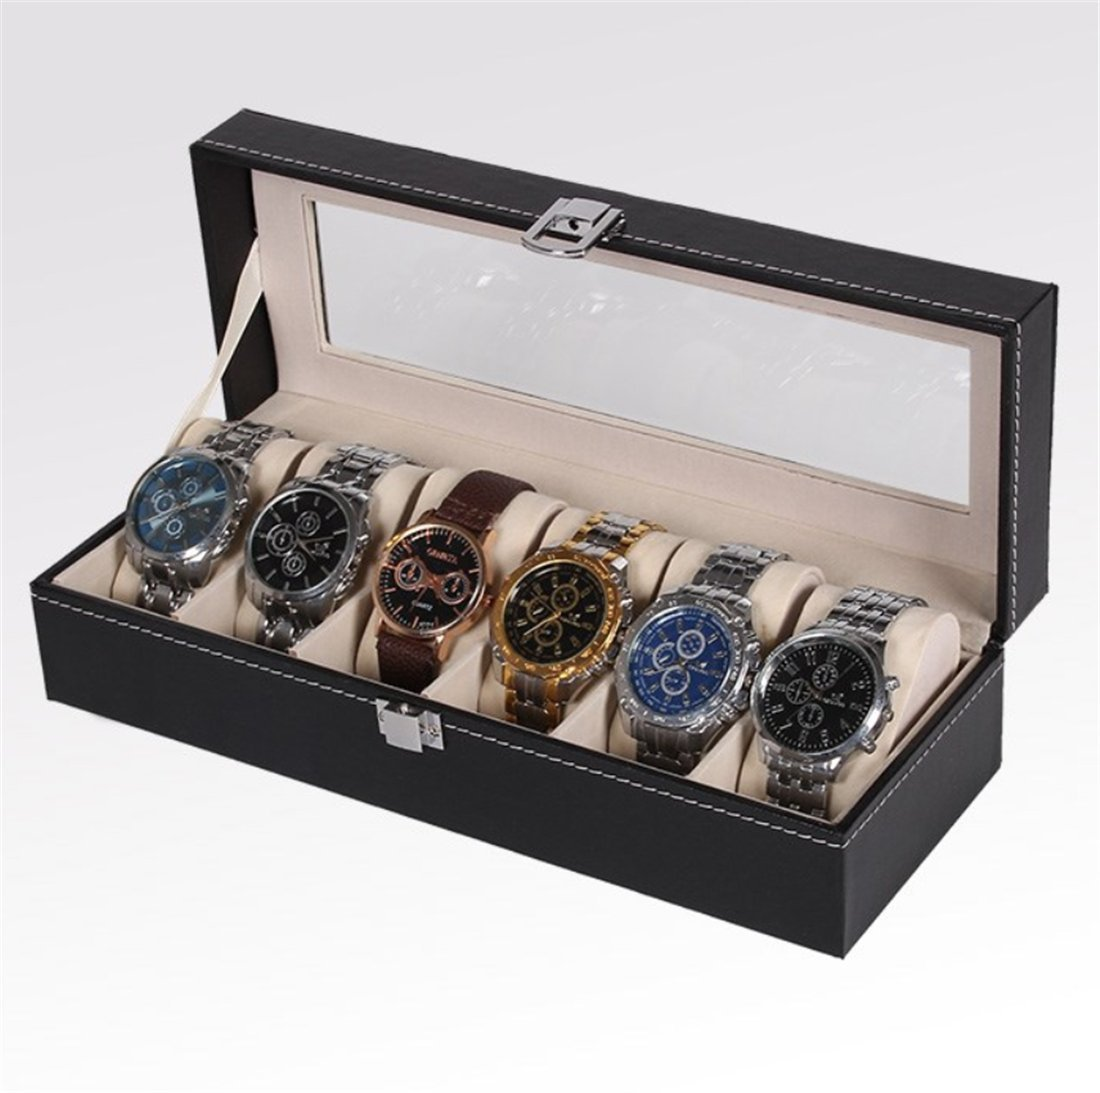 Buy Dower Watch Box With Valet Drawer For Men 6 Slot Luxury